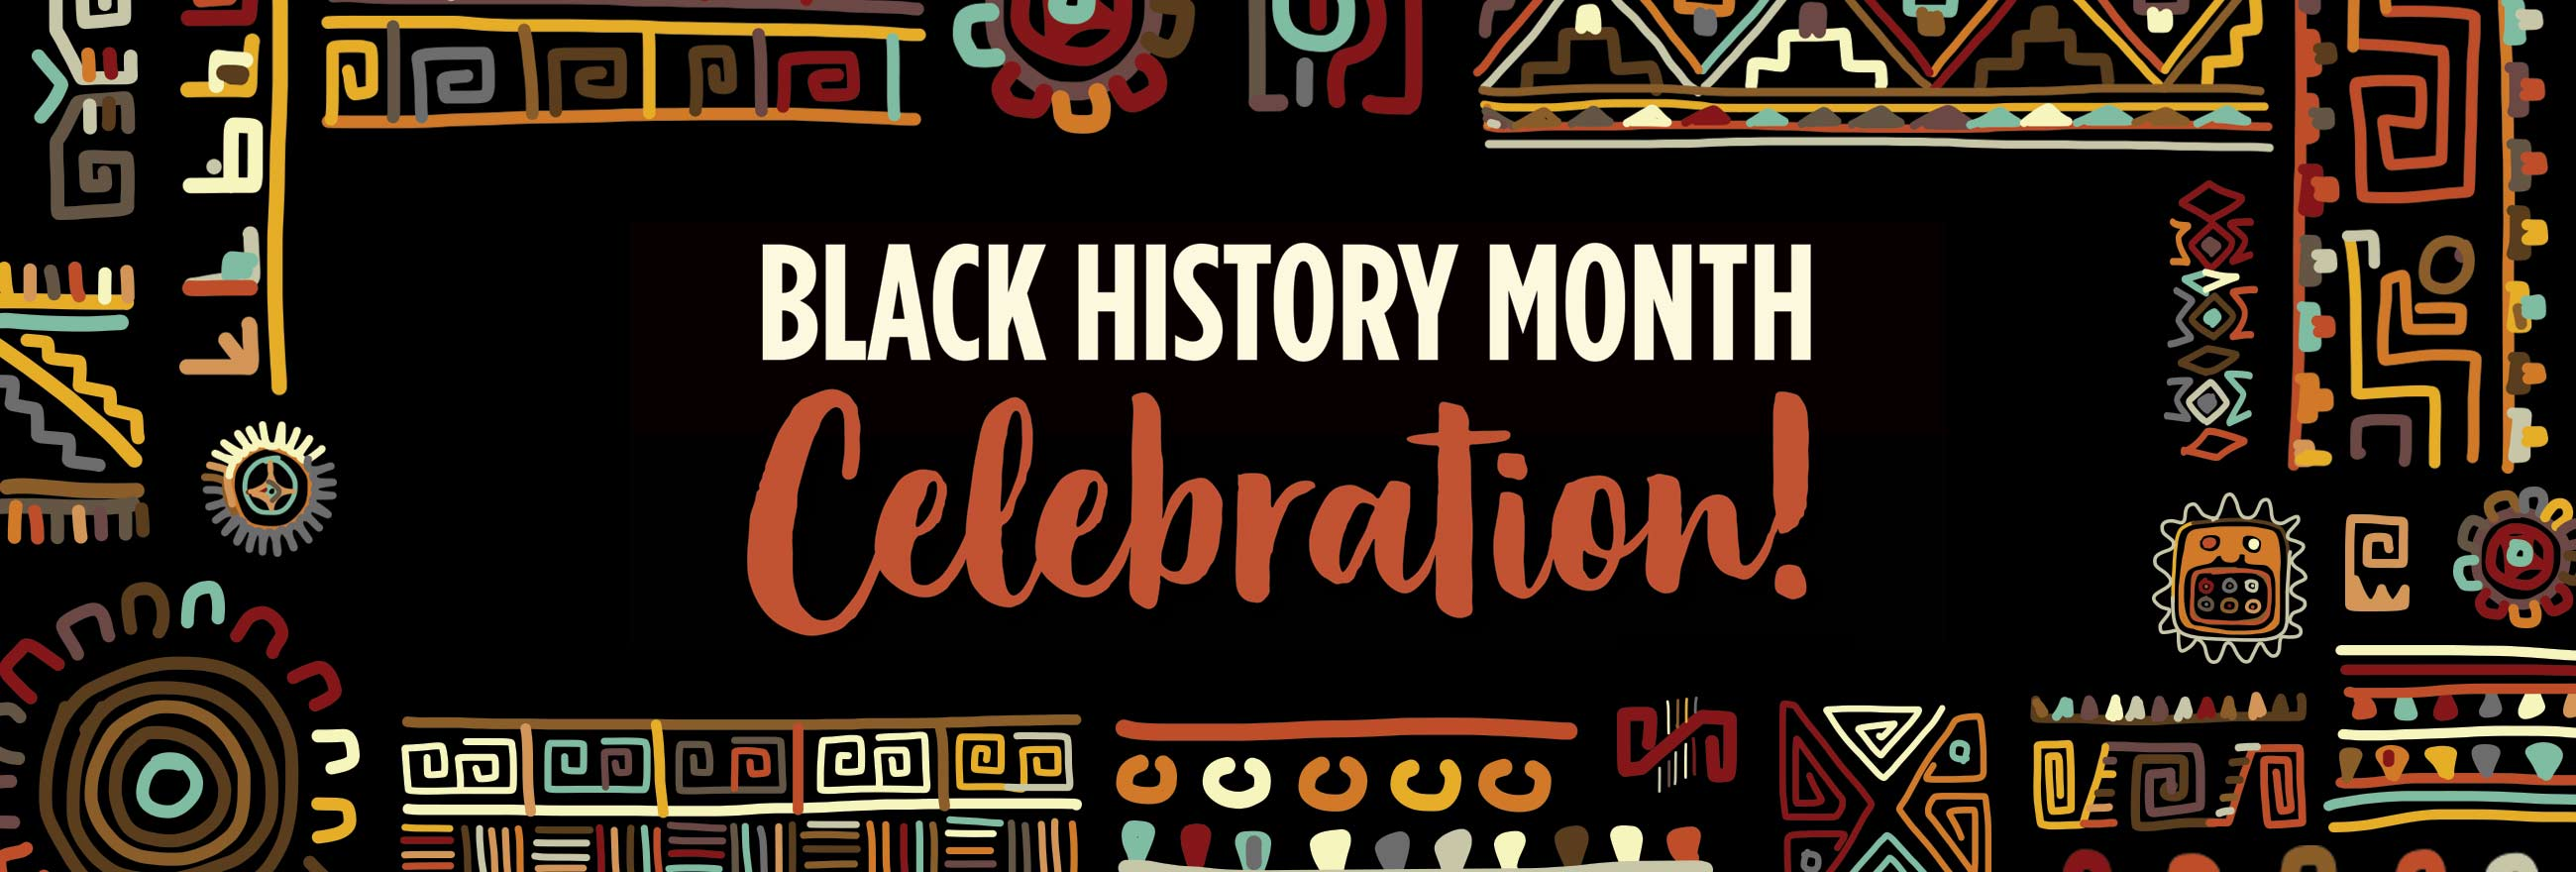 Prince George's County Black History Month